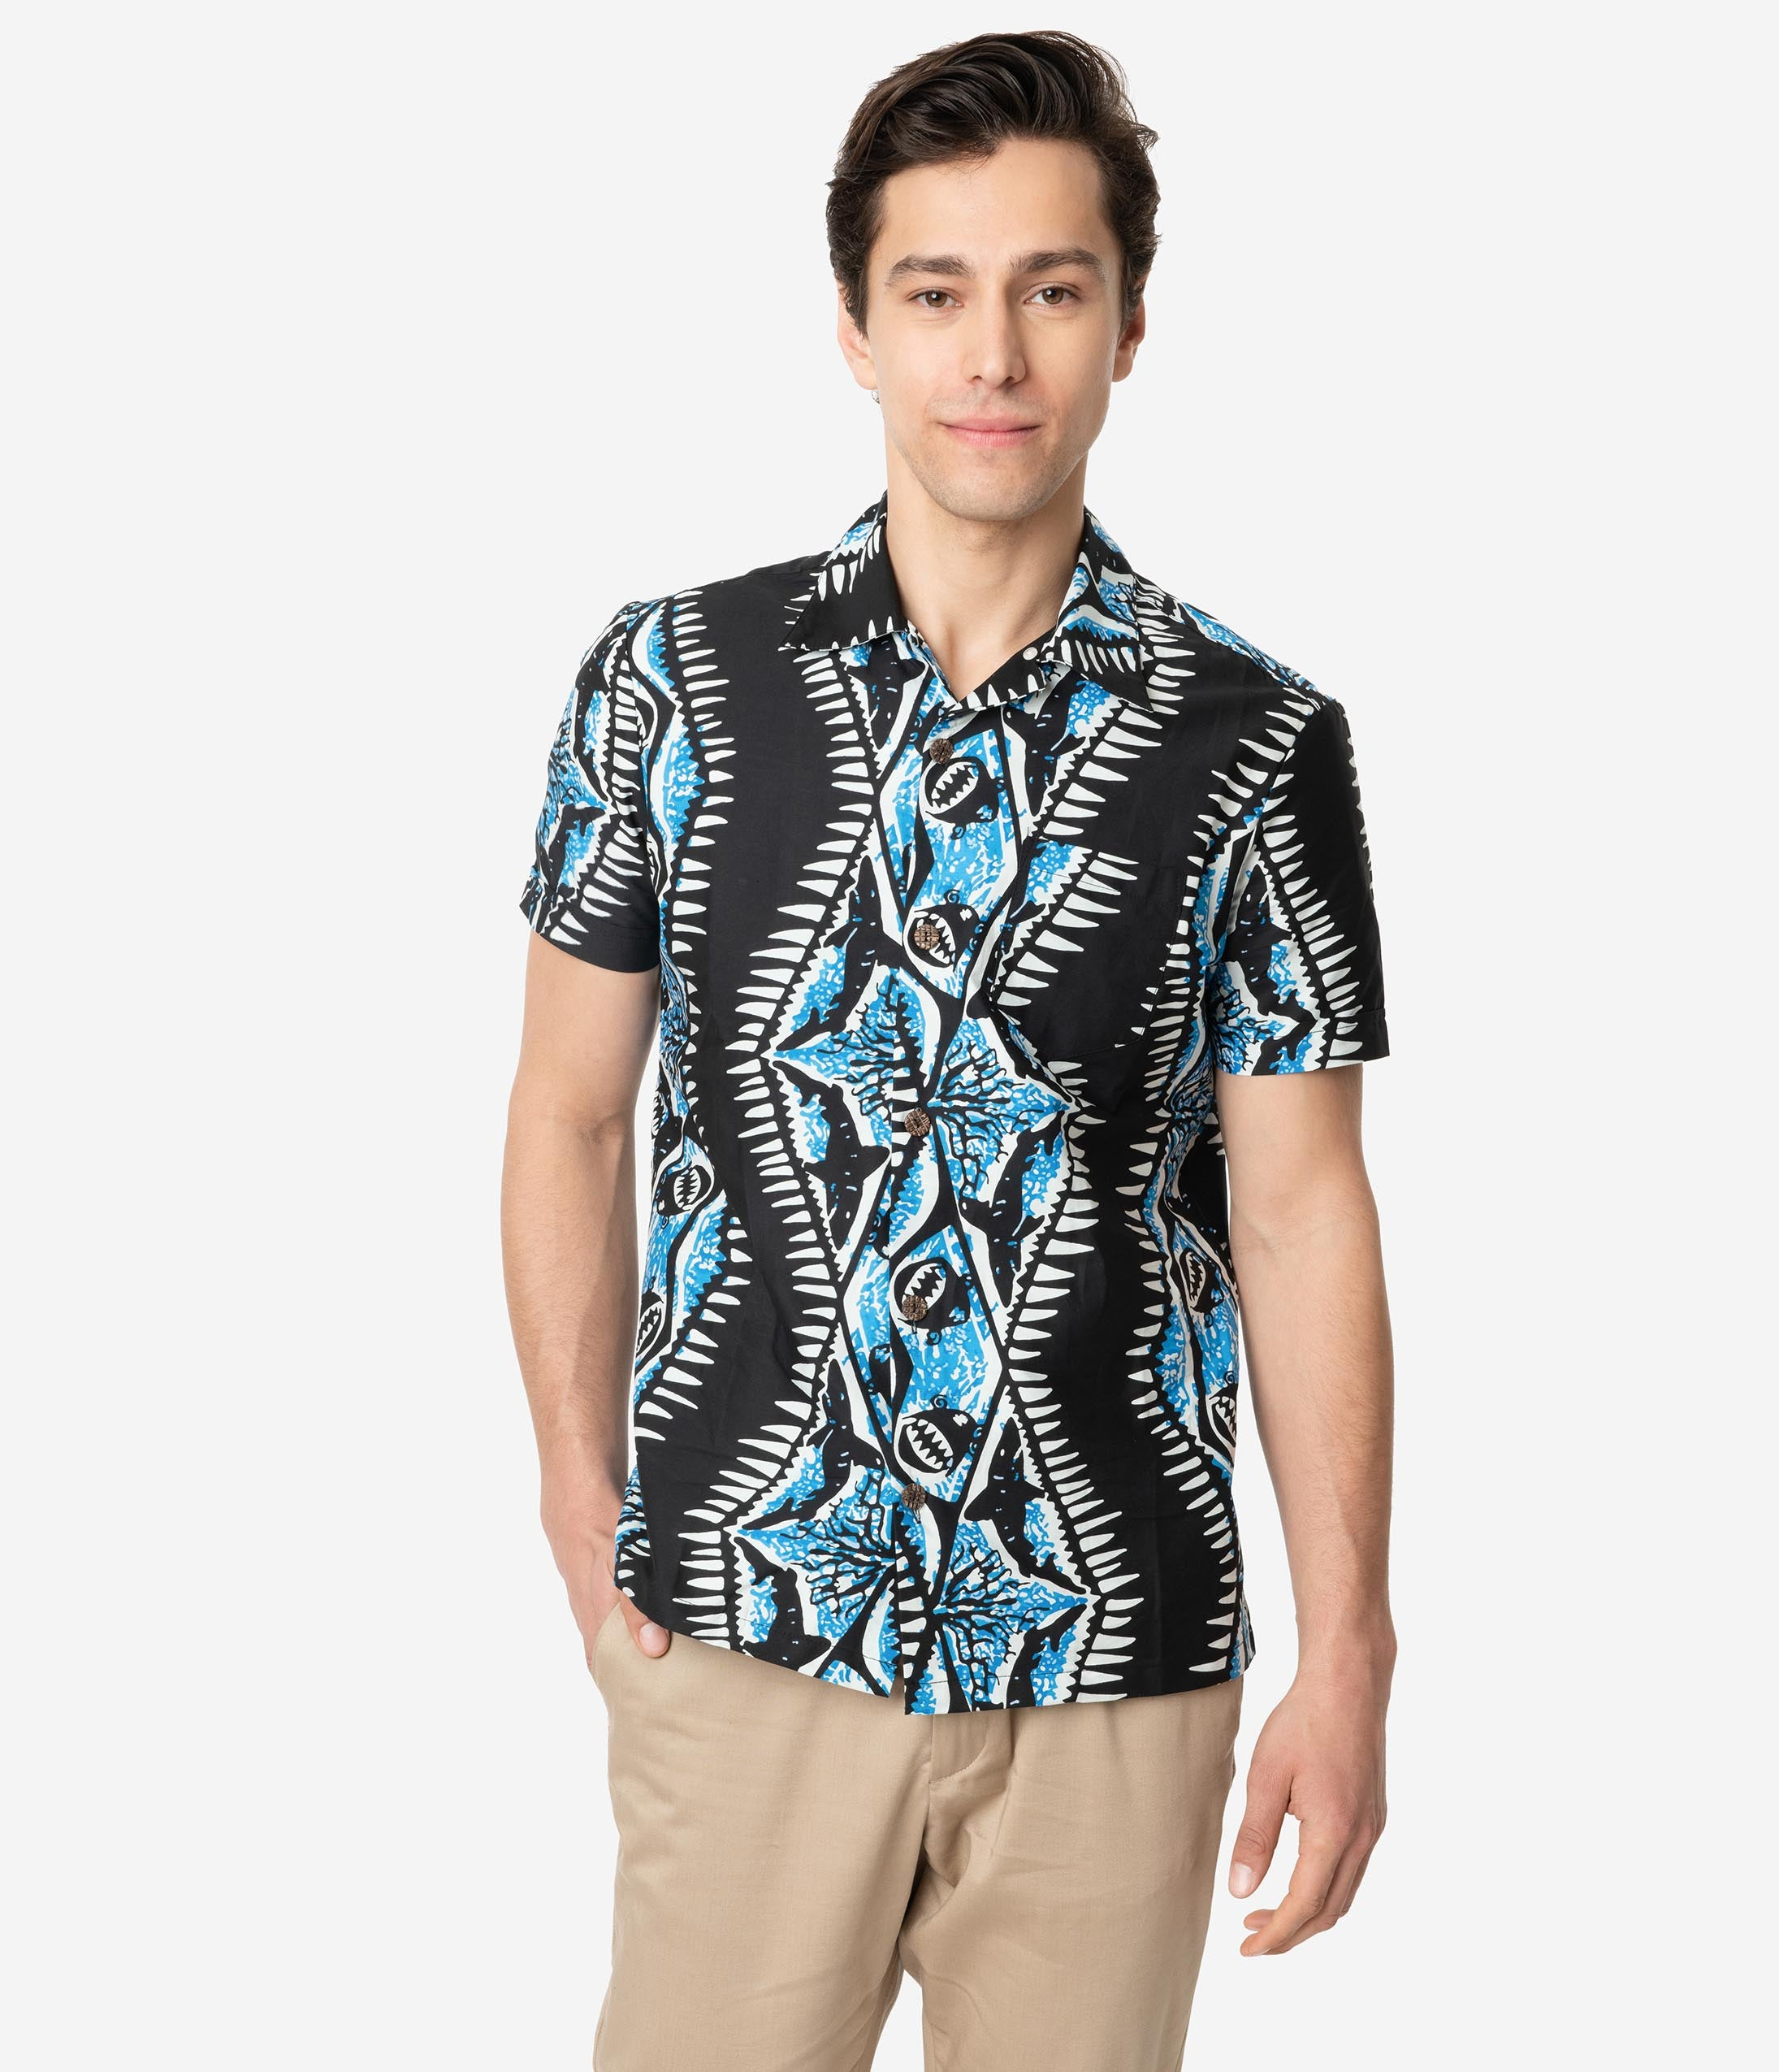 Retro Tiki Dress – Tropical, Hawaiian Dresses Alfred Shaheen Black  Blue Shark Print Mens Cabana Aloha Shirt $78.00 AT vintagedancer.com